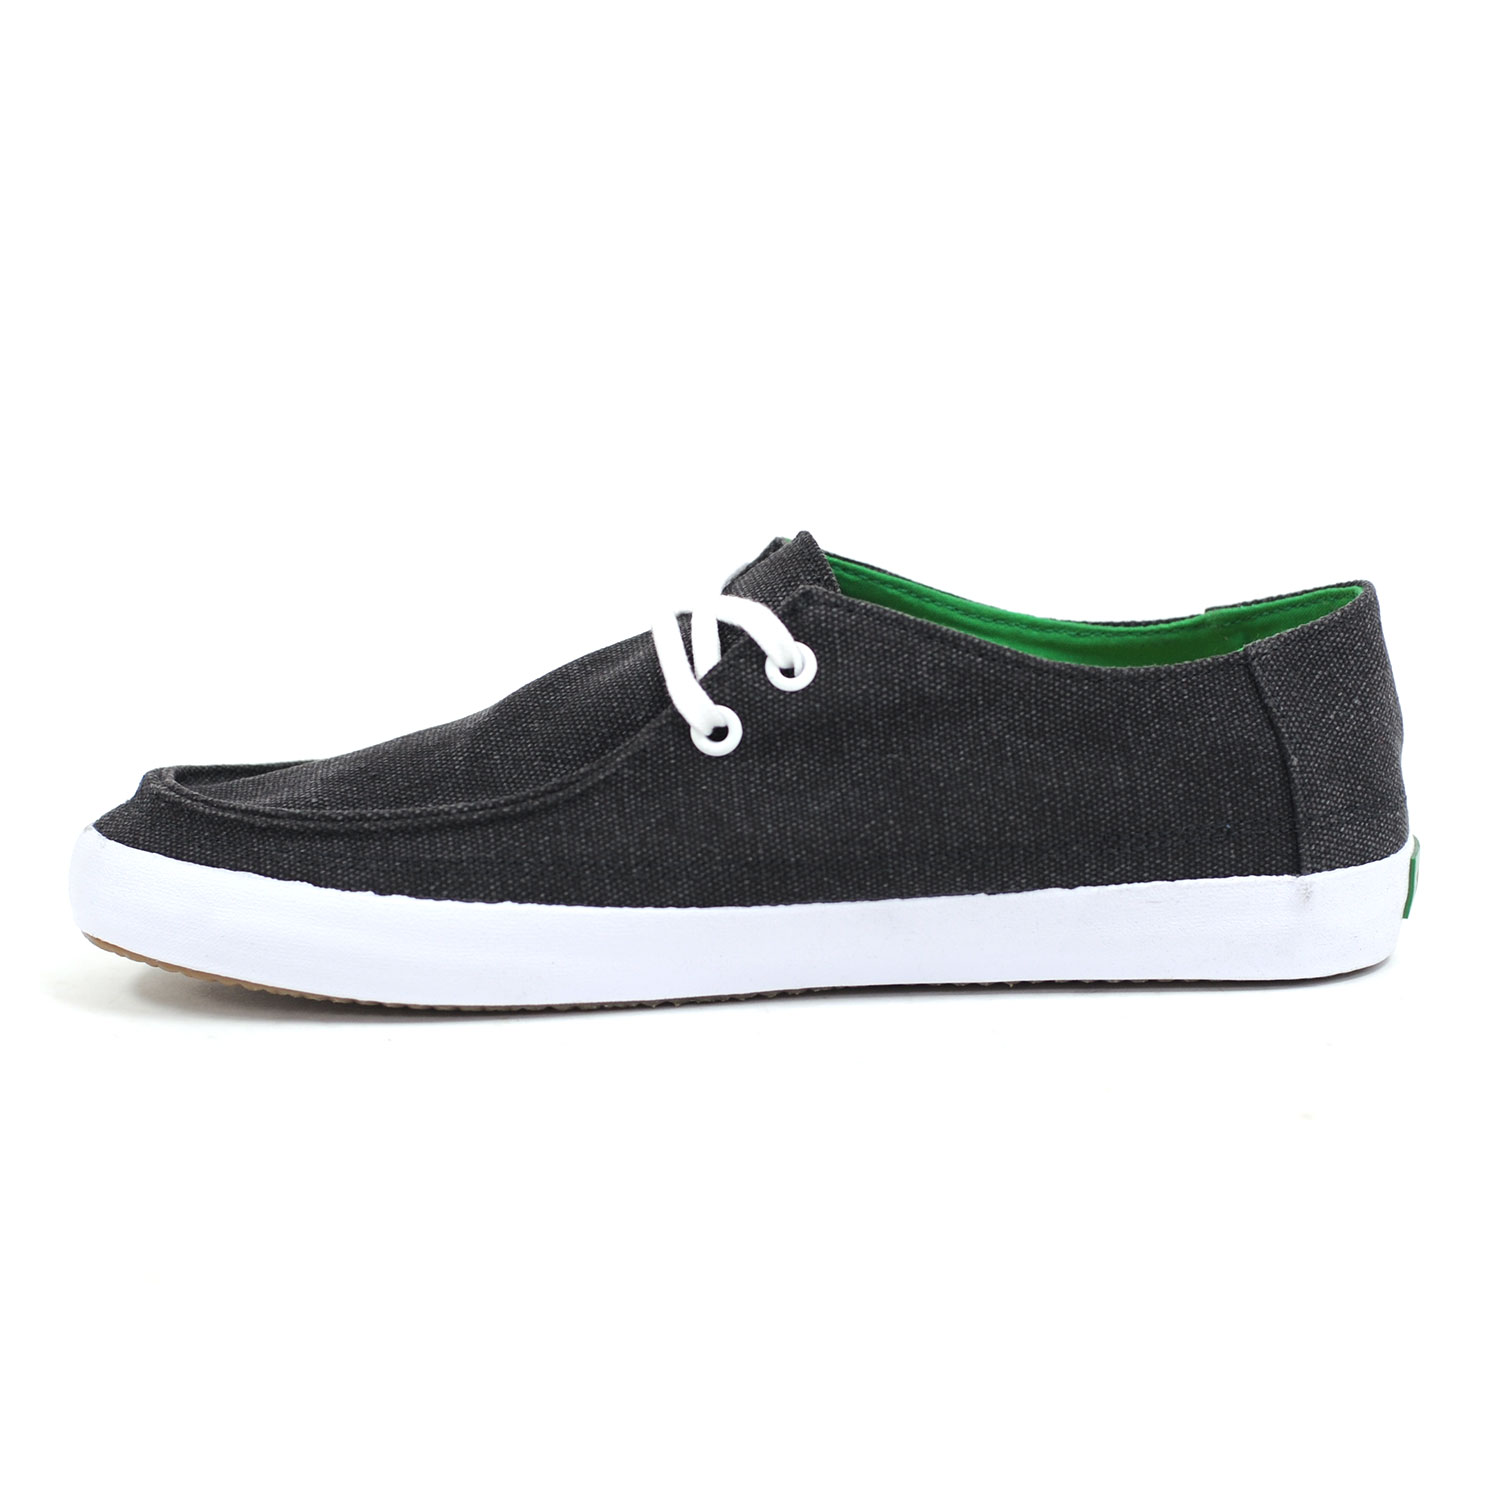 Mens Shoes For Watching Sports